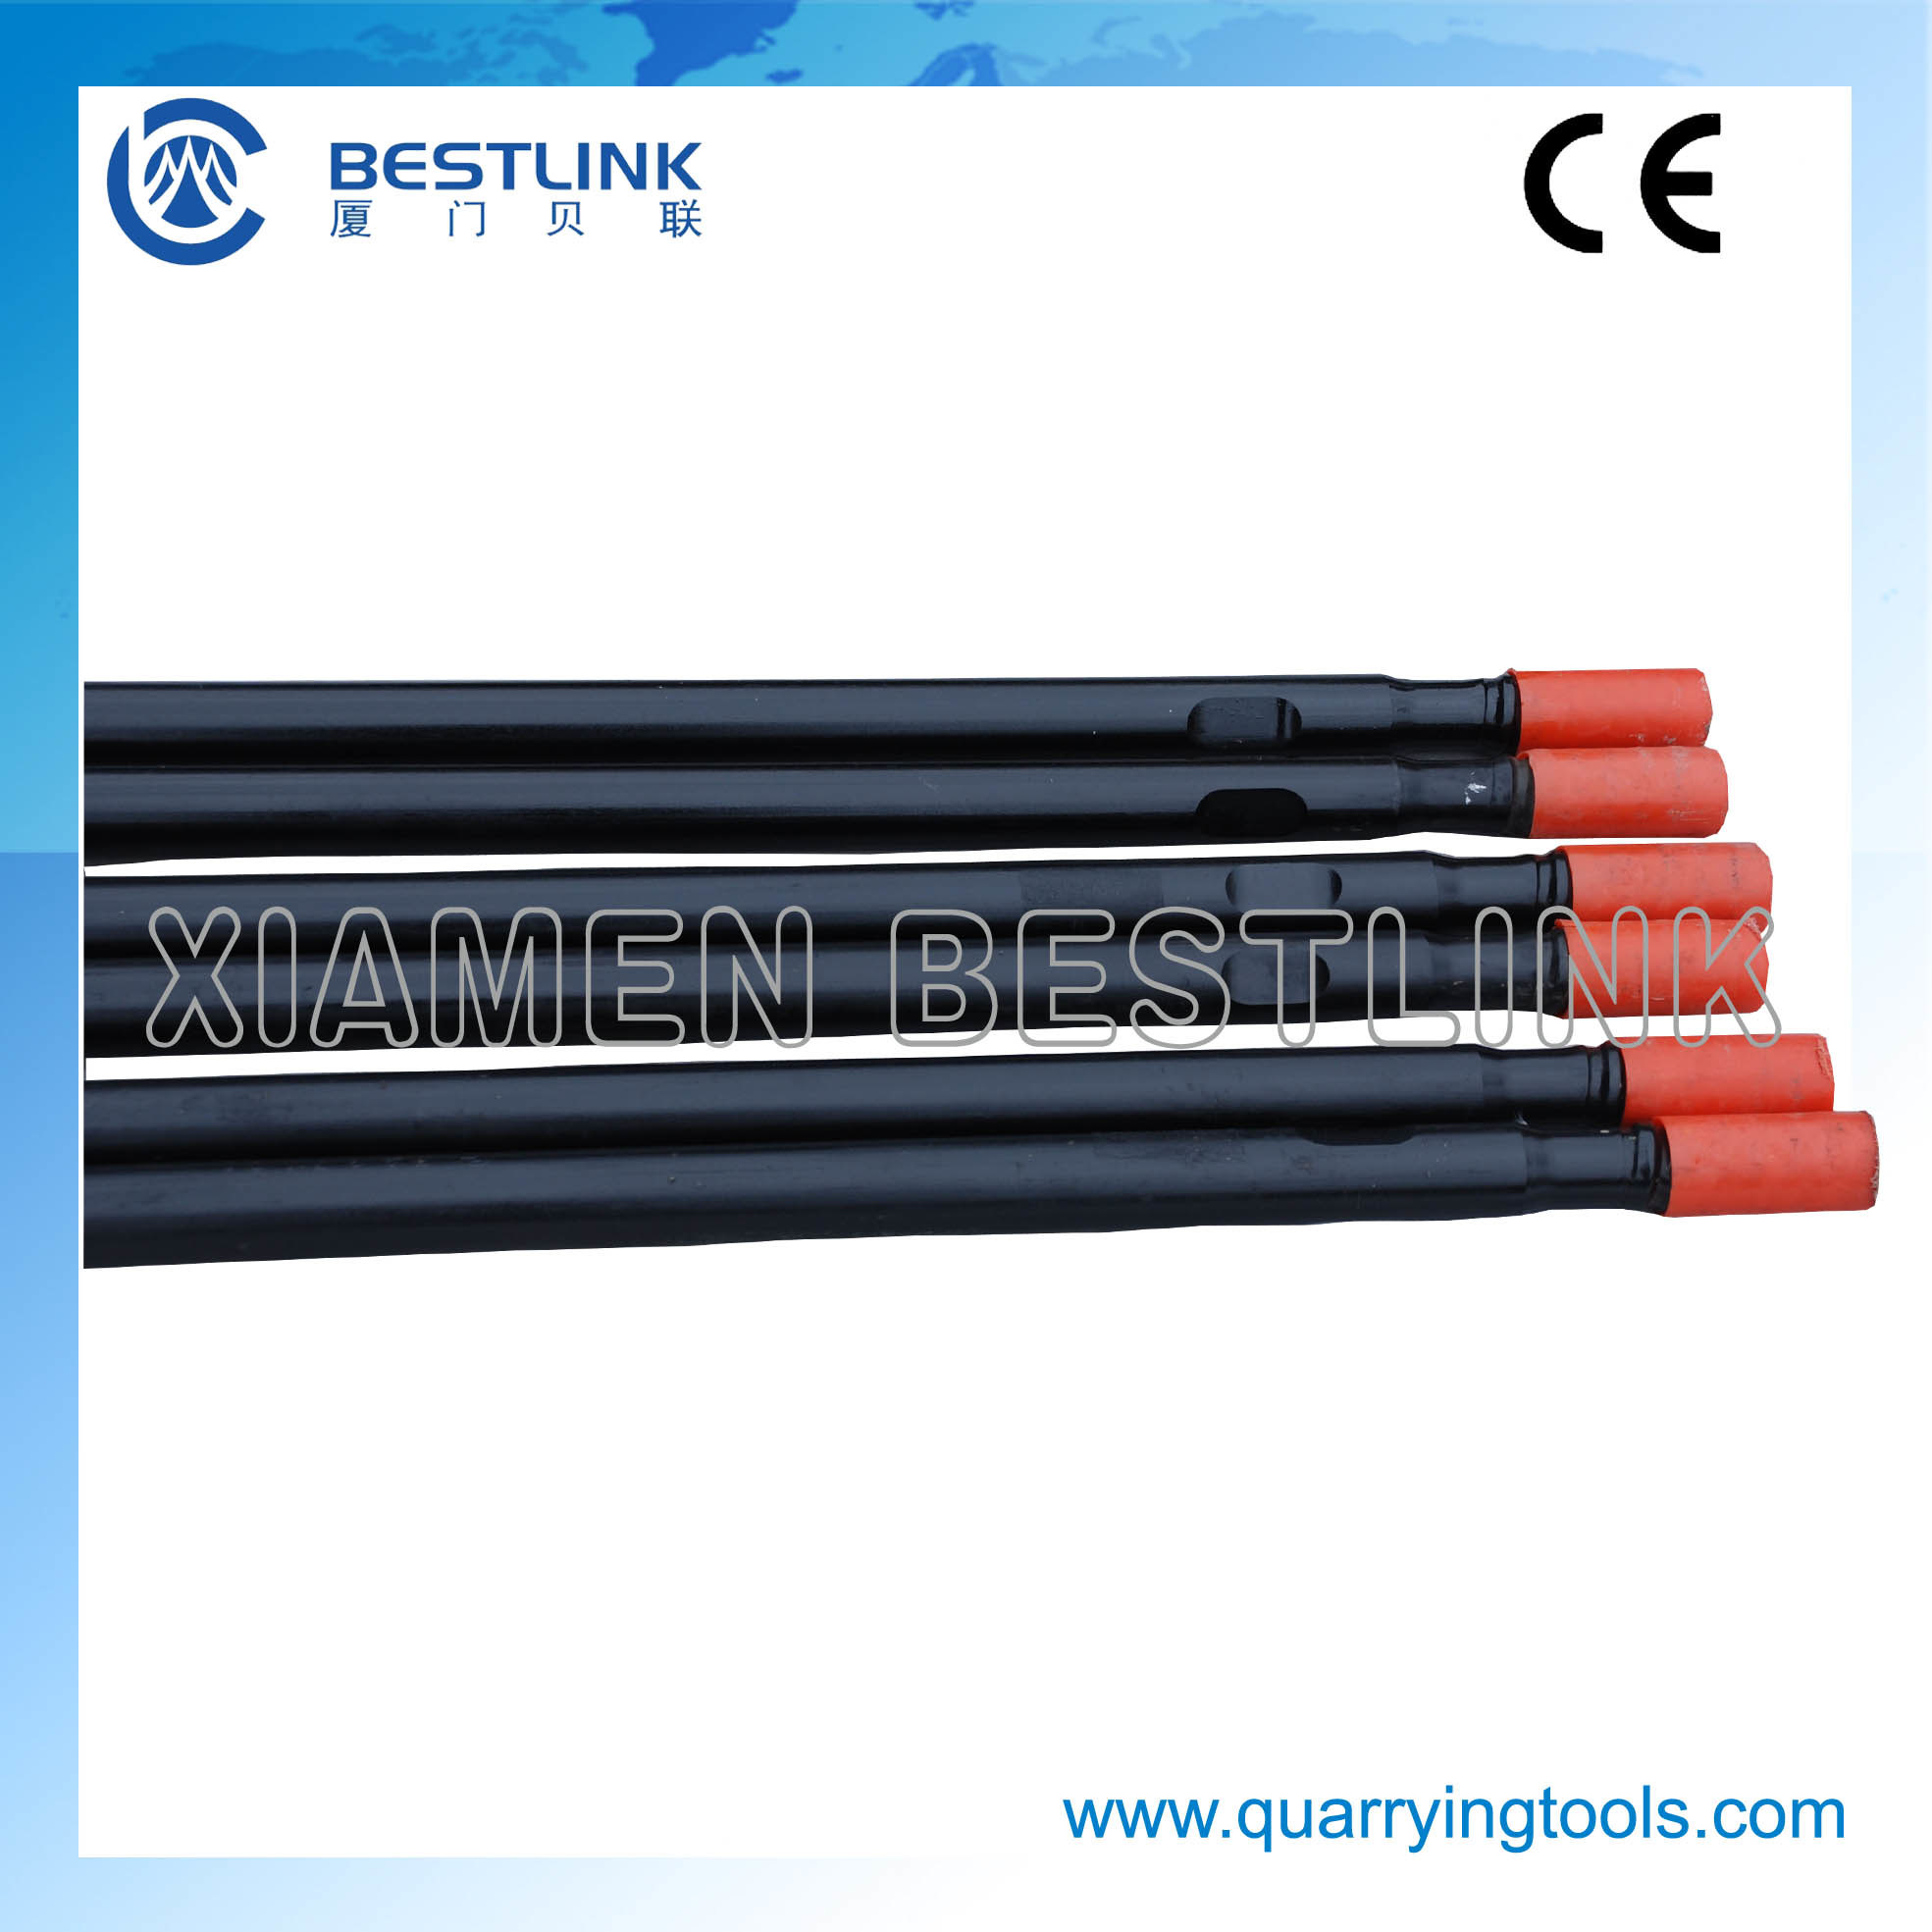 Bestlink R32/R38/T38/T45 Rock Drill Extension Rod pictures & photos